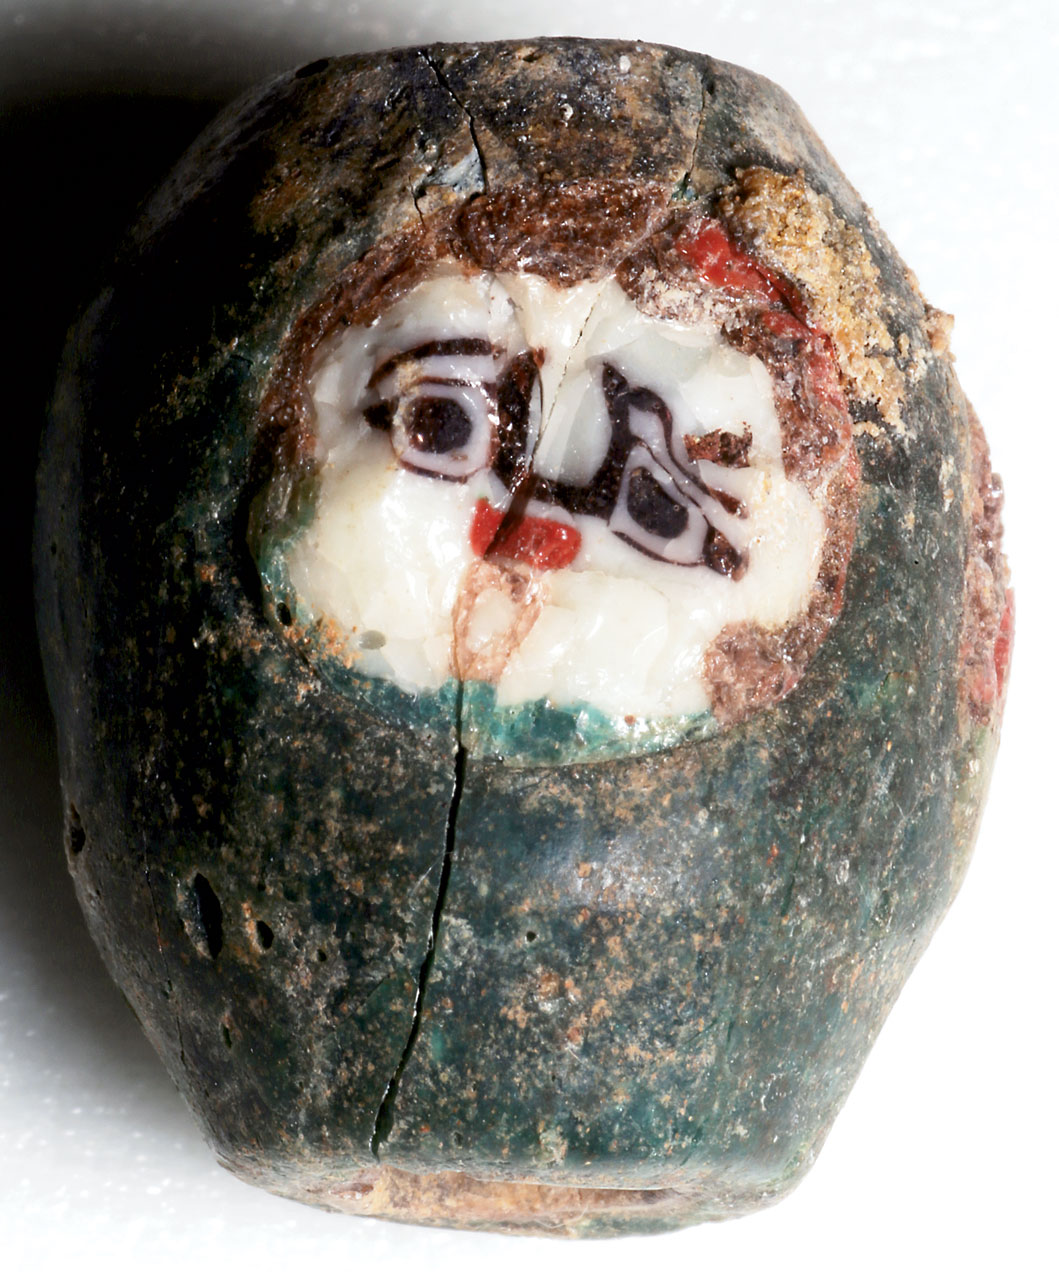 GREEN BARREL BEAD WITH TWO FACES, found in Nubia; faces appear to be a version of Gorgon, but not seen before. Brown glass may denote hair. The face cane shown is battered and of very white glass. This bead (21.12473.4) was found with the eyebeads with gold foil or bands on the last page.  Courtesy of the Museum of Fine Arts, Boston.